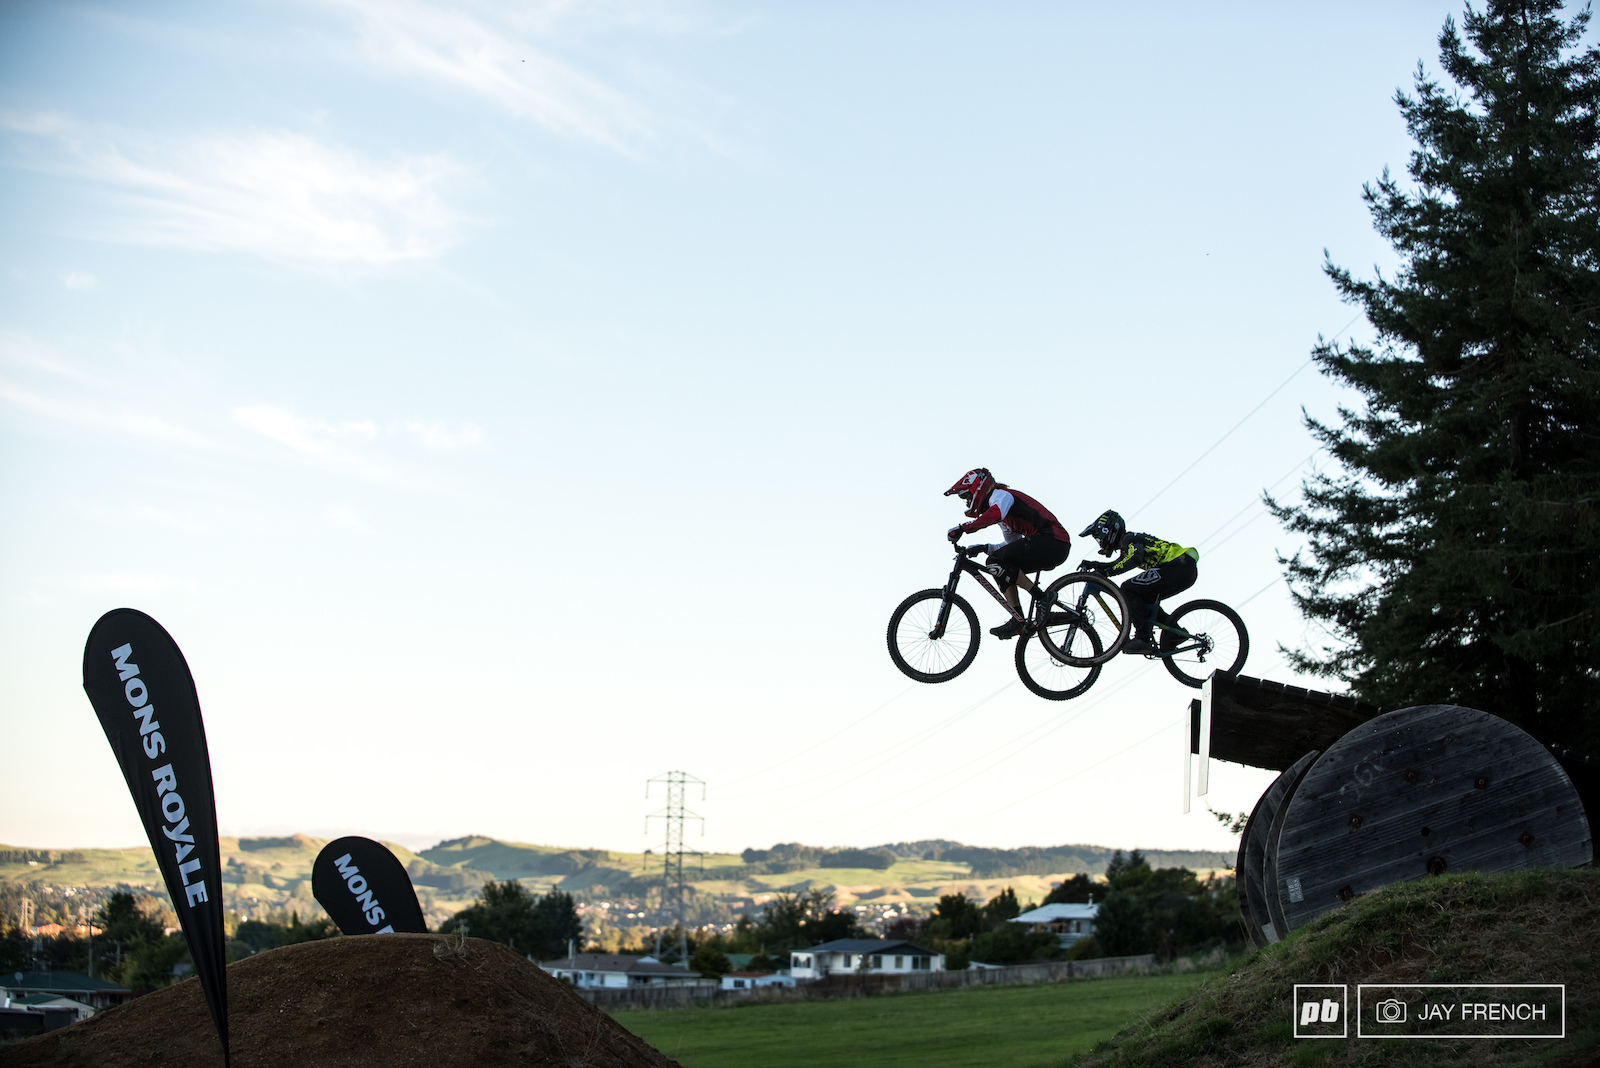 Berms Hips and Front Flips